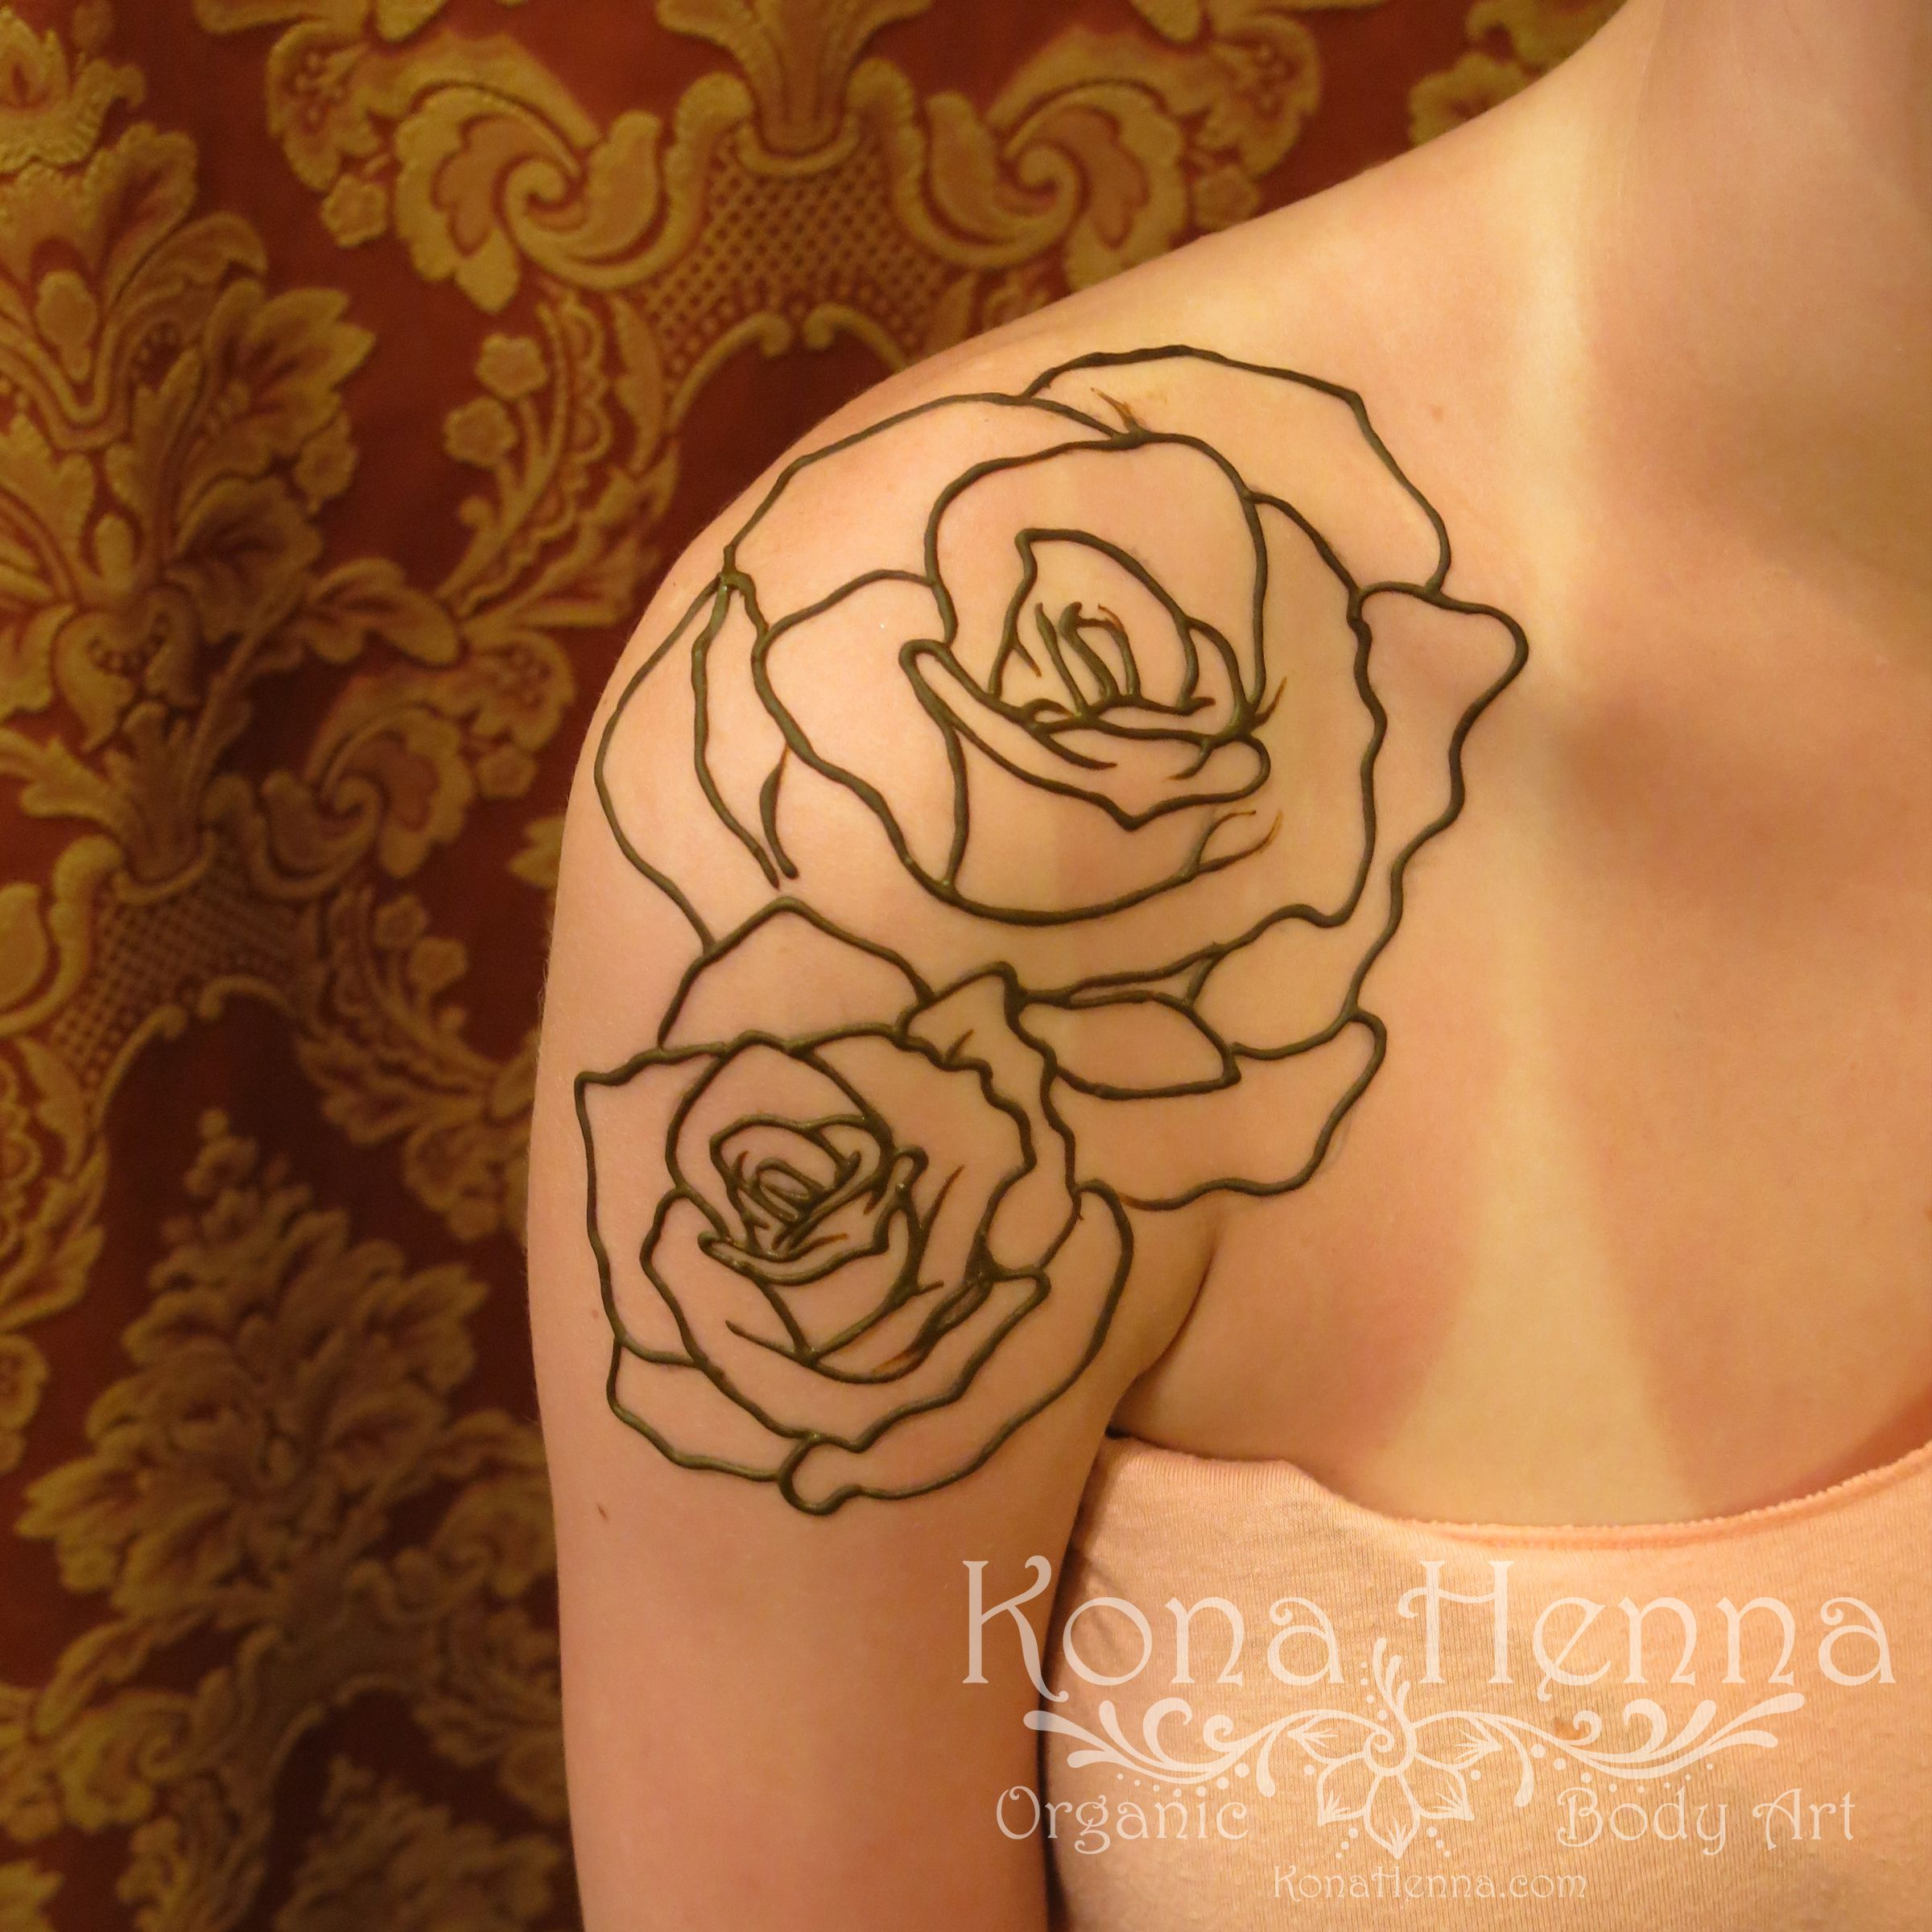 Rose Henna Tattoo Designs On Wrist Small: Organic Henna Products. Professional Henna Studio